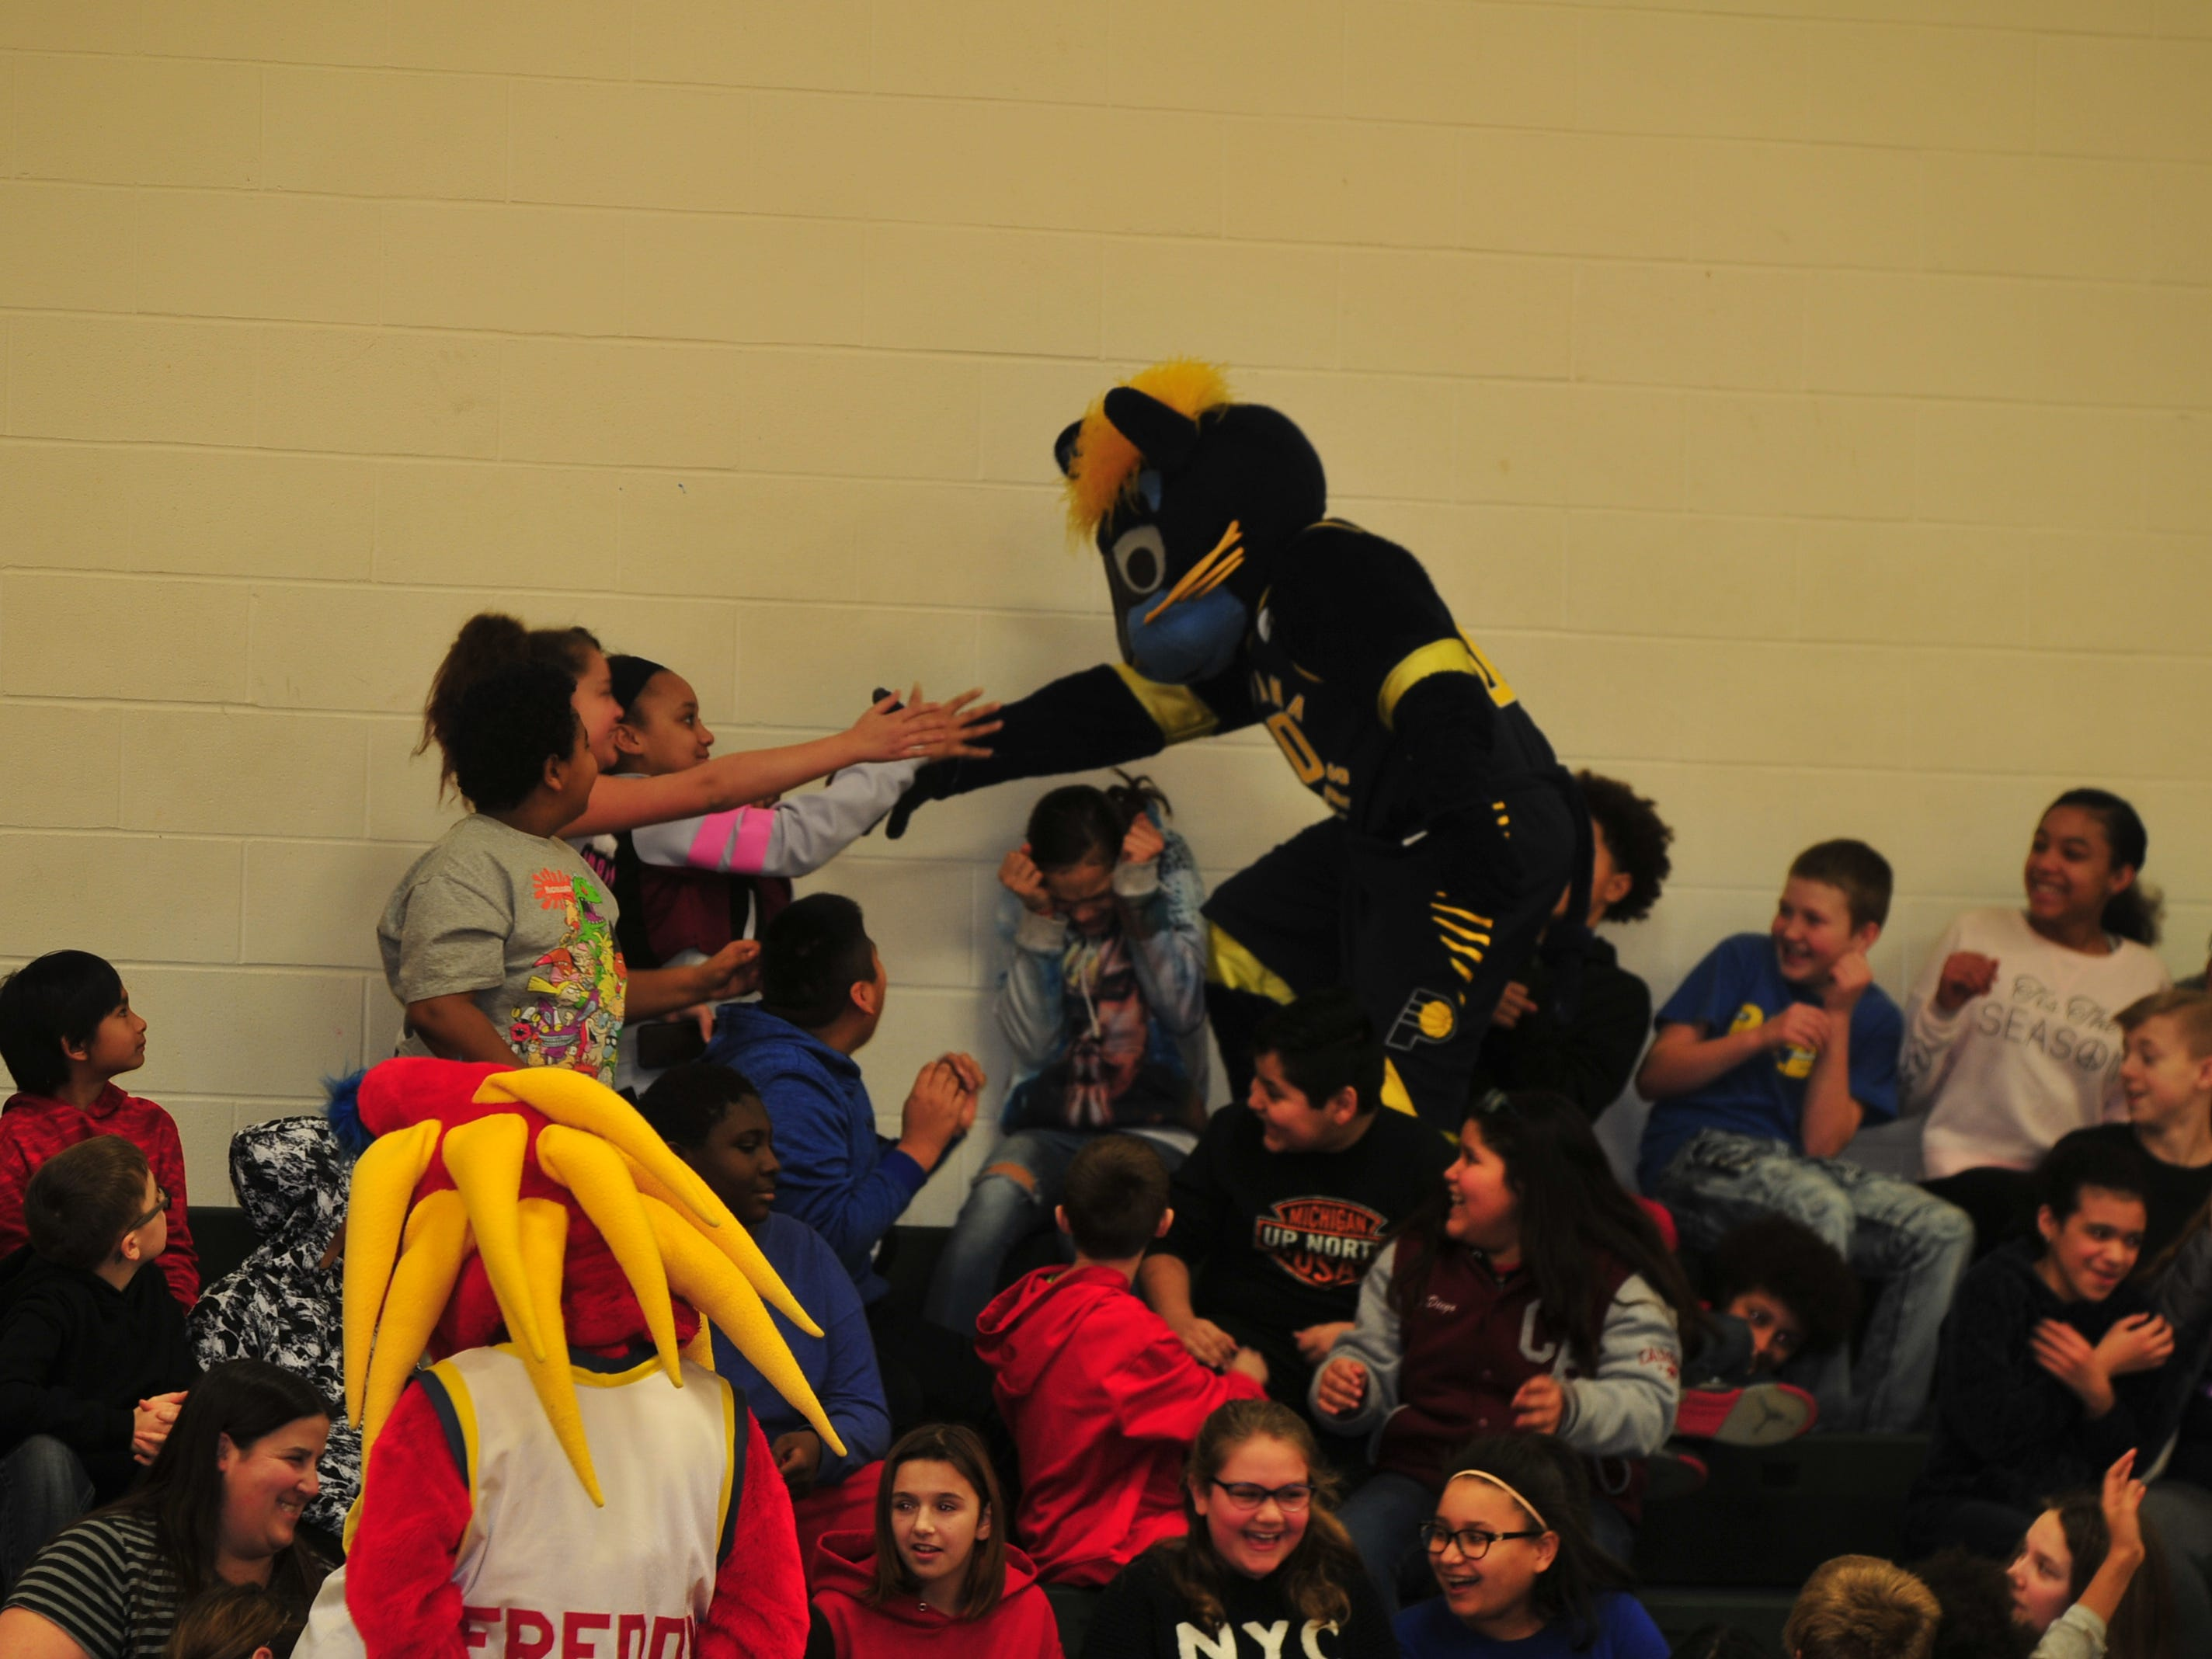 Boomer, mascot for the NBA's Indiana Pacers, greets Dennis Intermediate School students Wednesday.